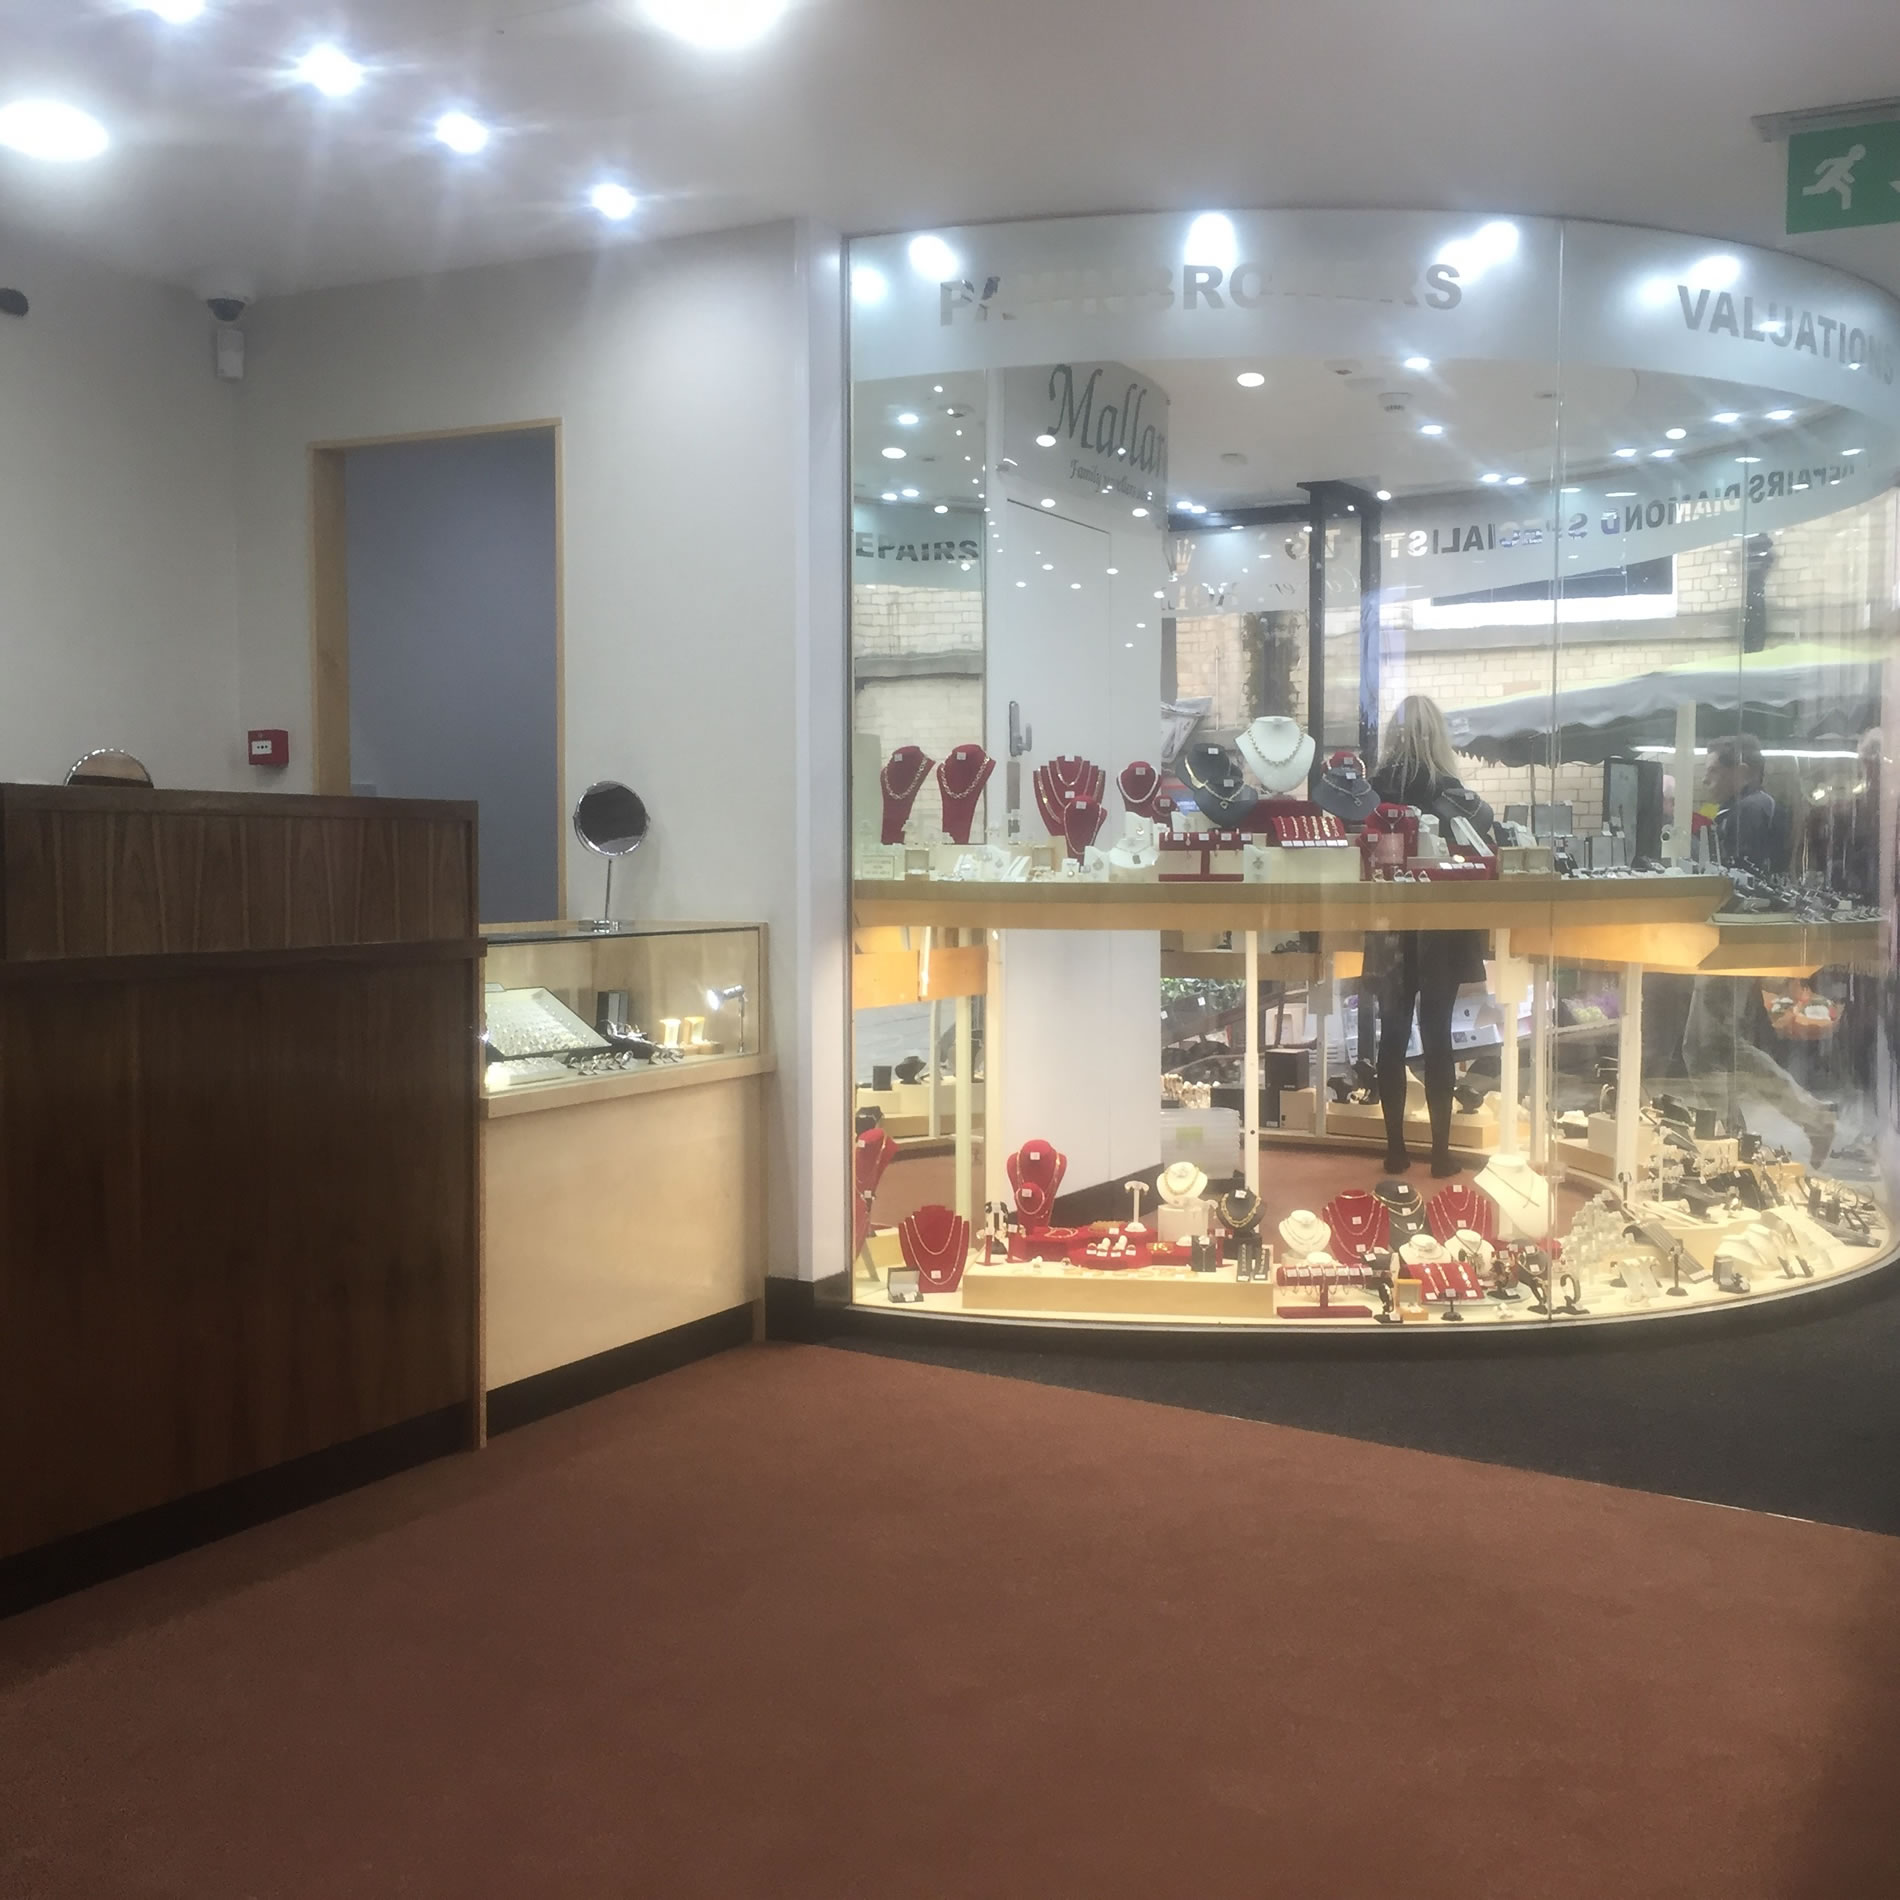 Mallards jewellers and pawnbrokers. Quality bespoke shopfitting  in a traditional style.